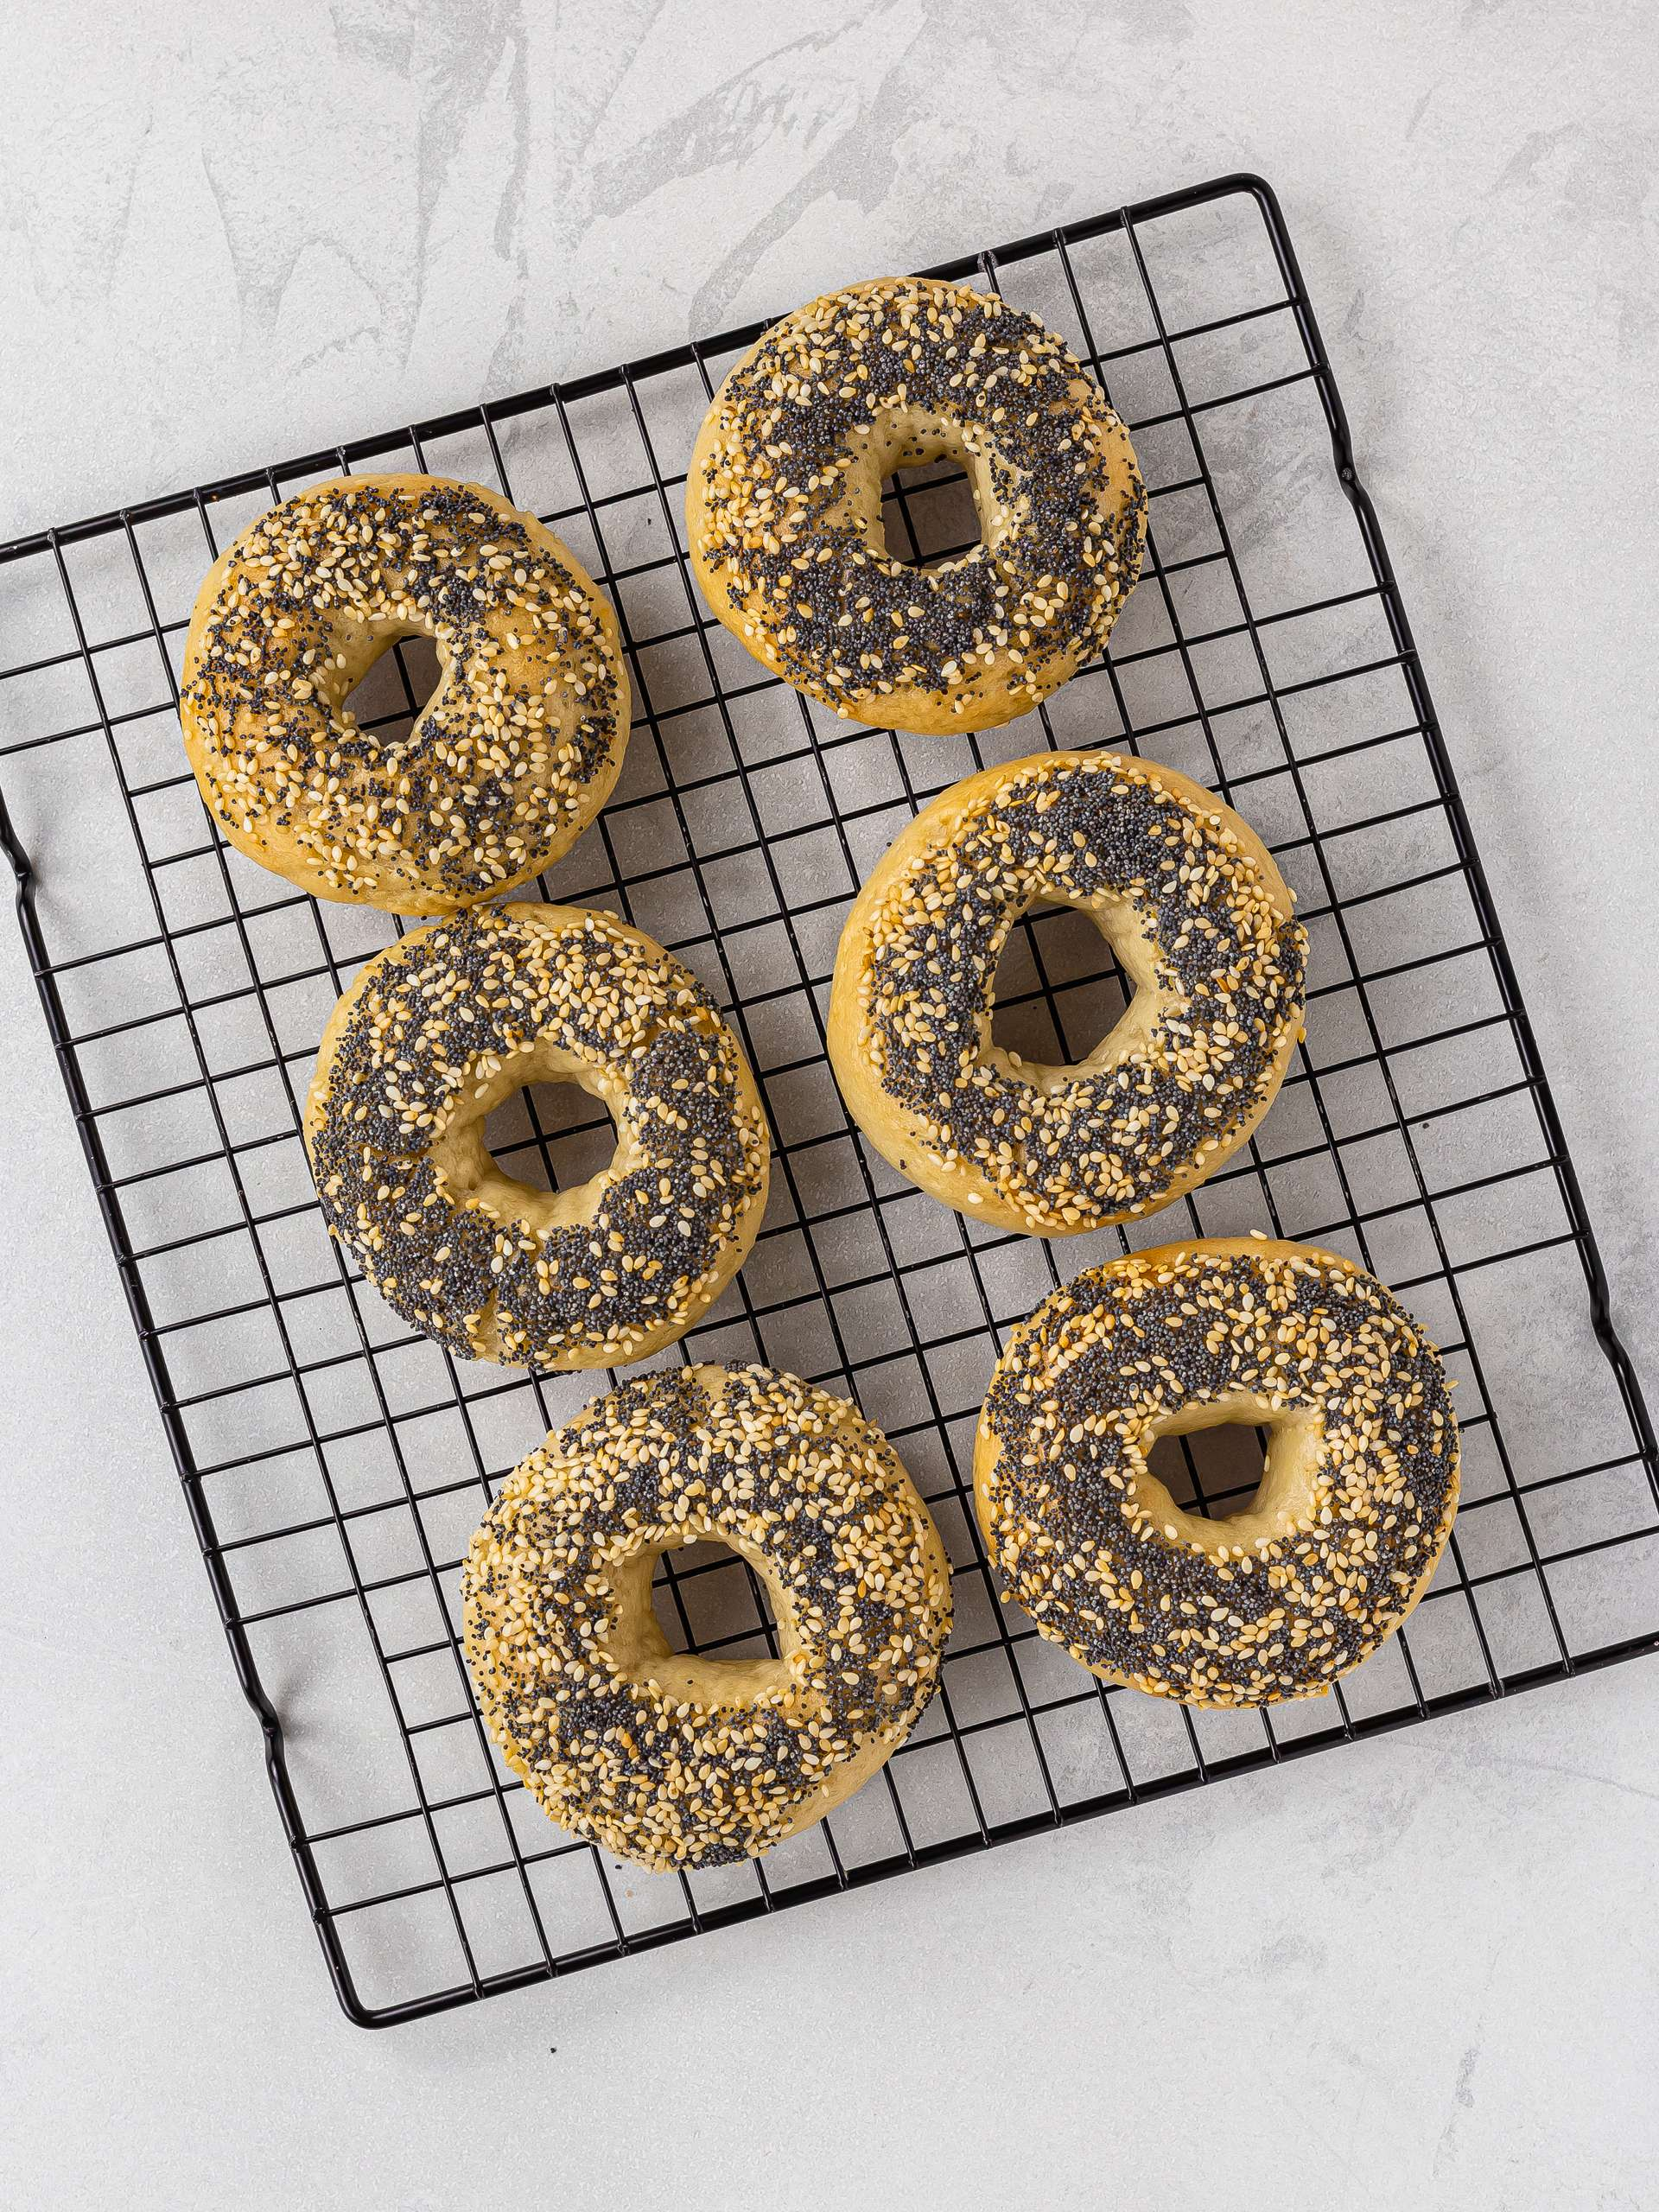 baked gluten free bagels on a rack